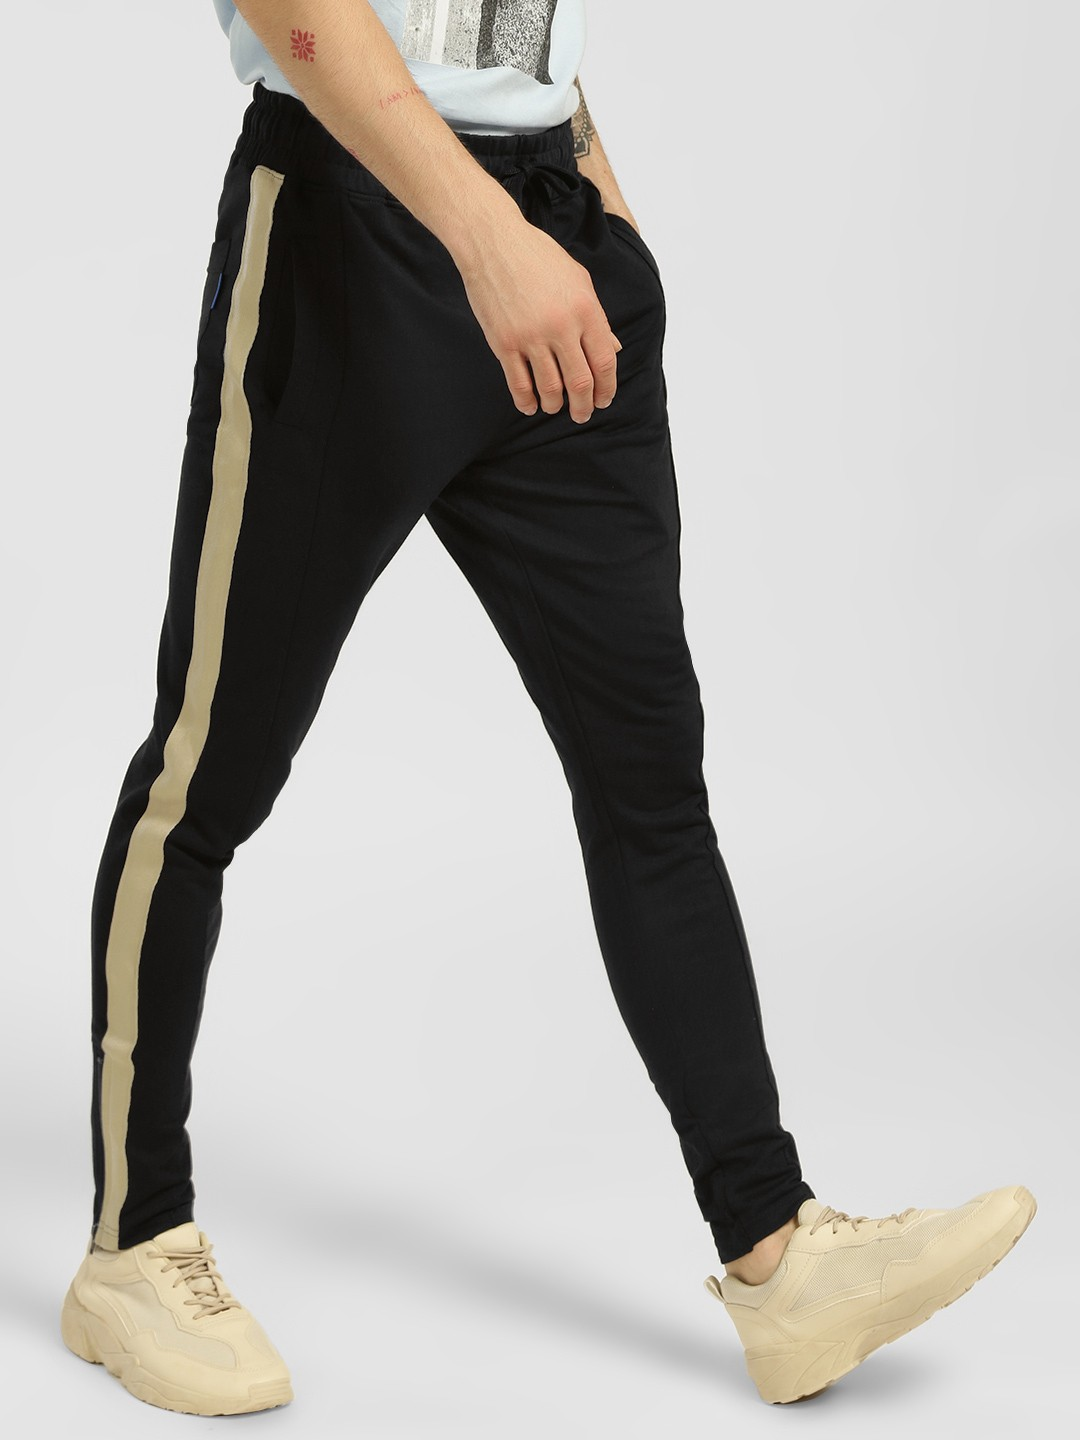 Blue Saint Black Contrast Side Tape Skinny Joggers 1